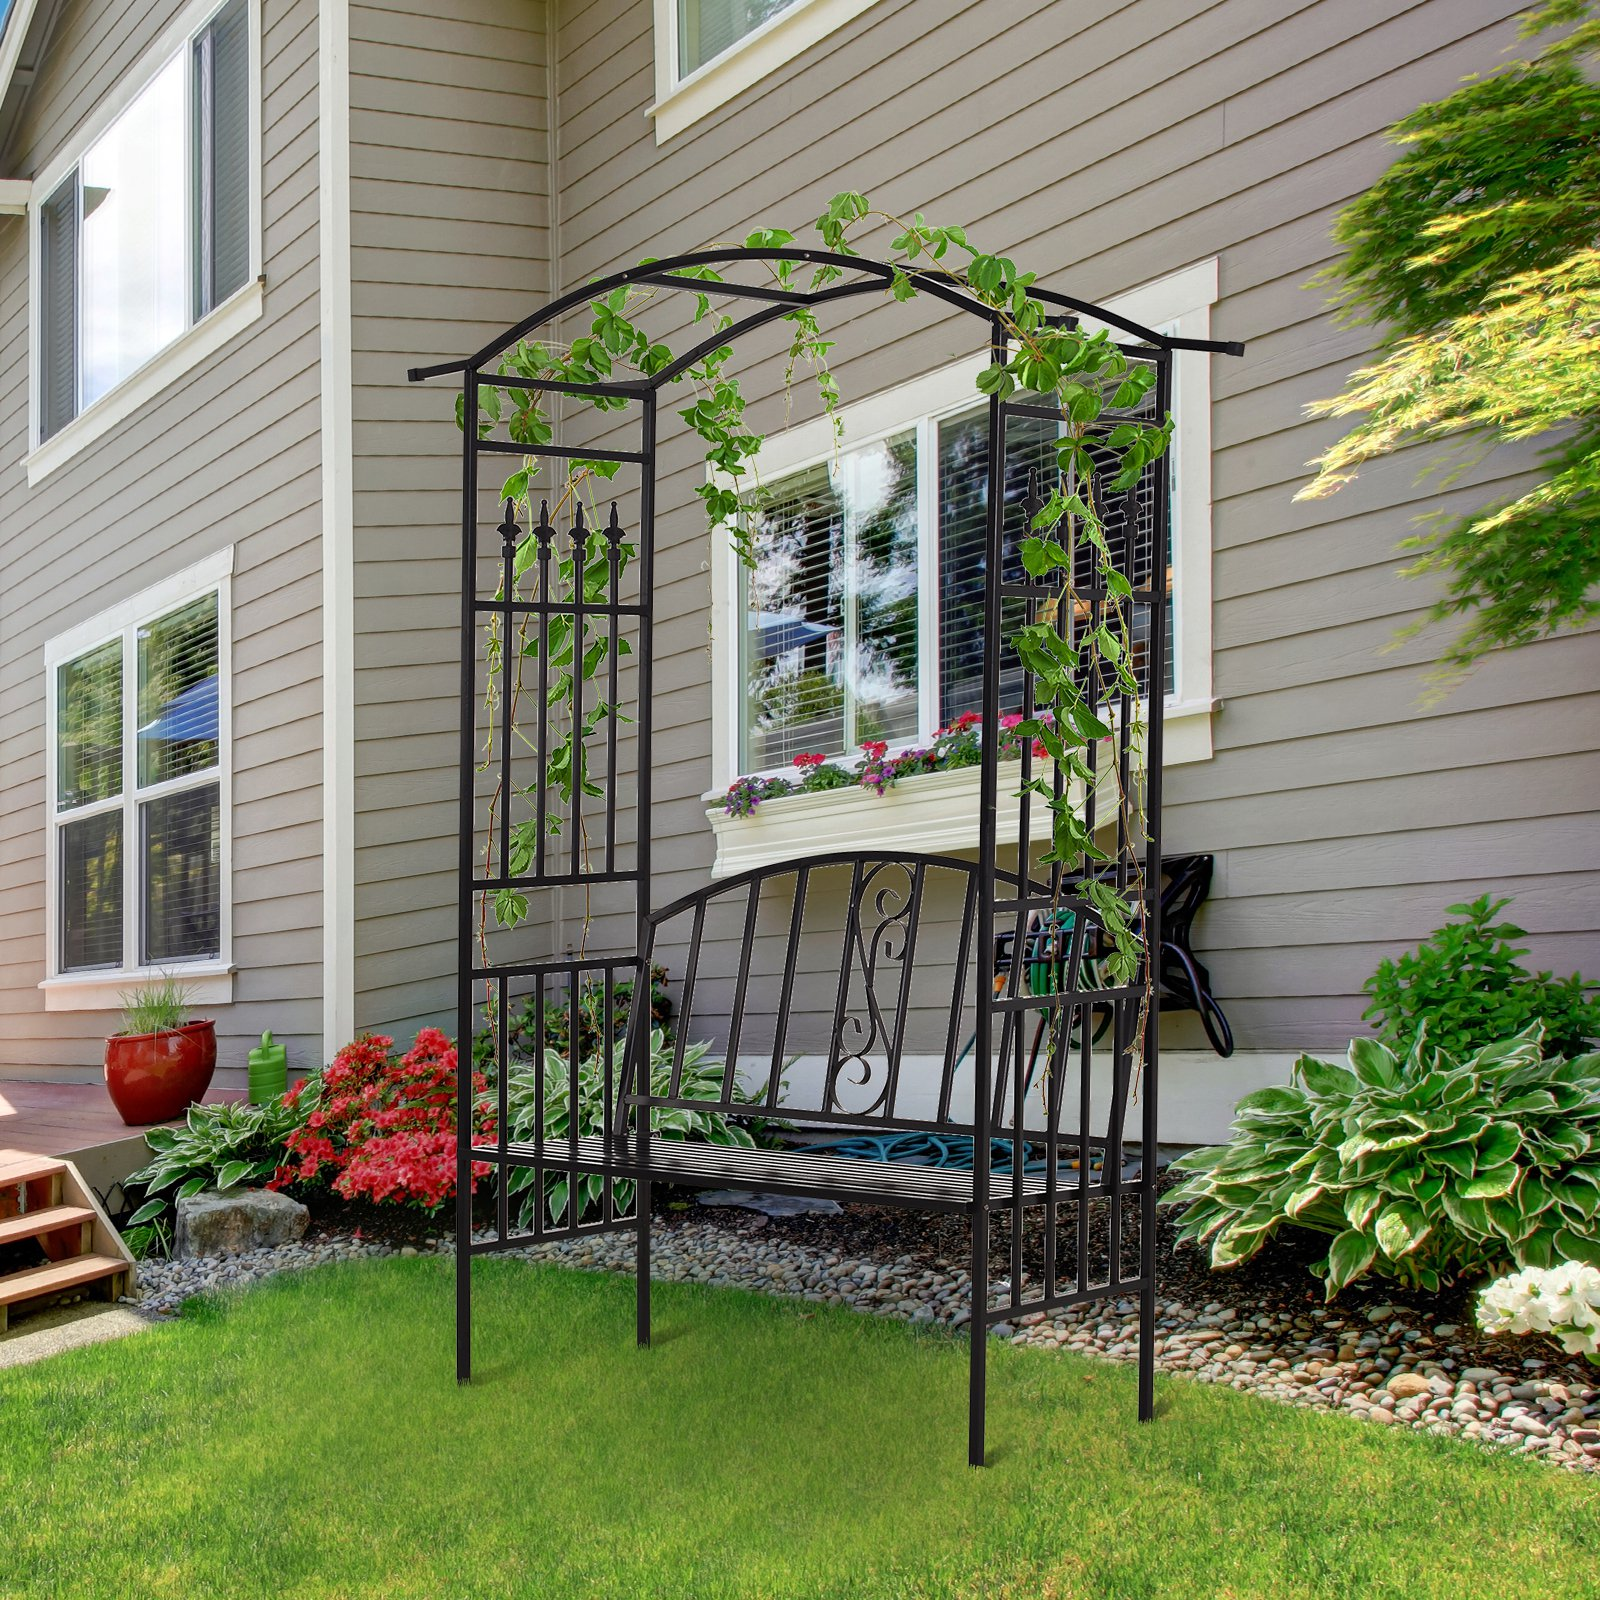 Outsunny Steel Frame Outdoor Garden Arch w/ 2-Seater Bench Black